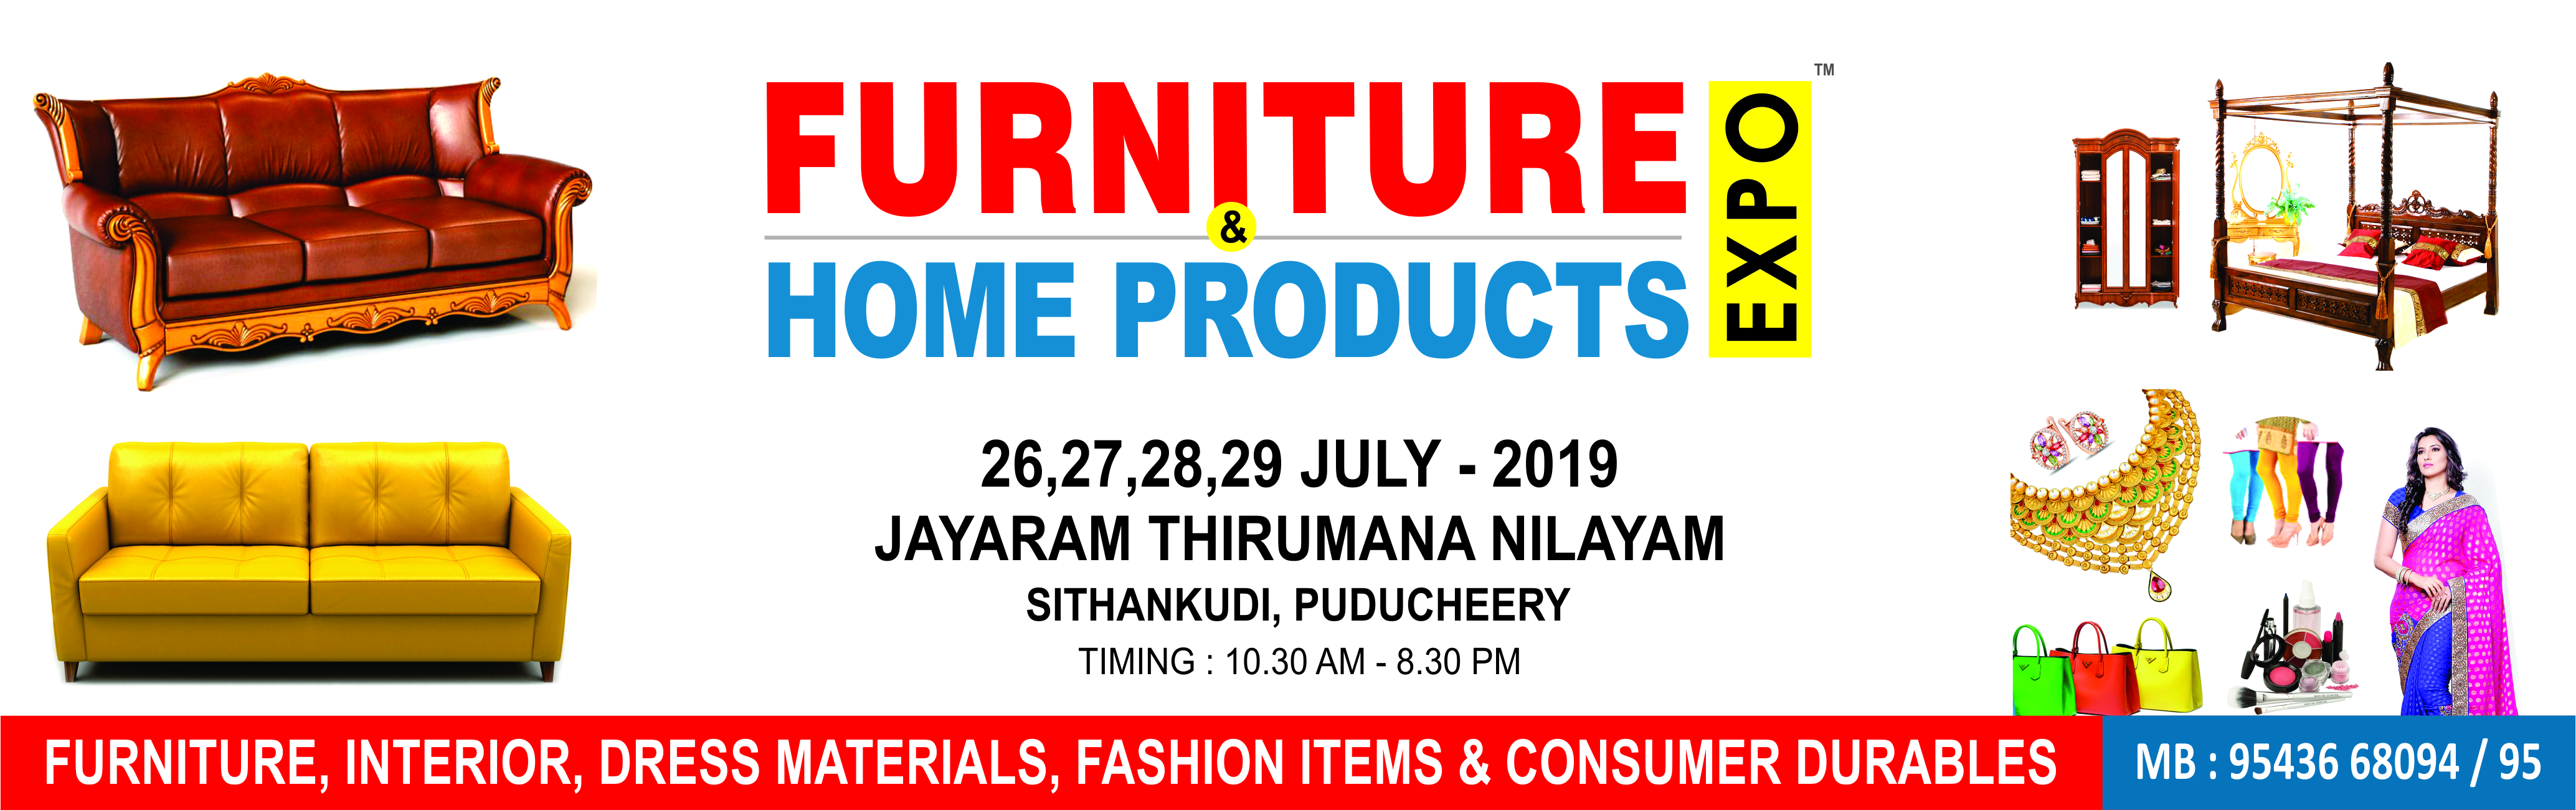 Prompt Trade Fairs (India) Private Limited, Exhibition Organiser